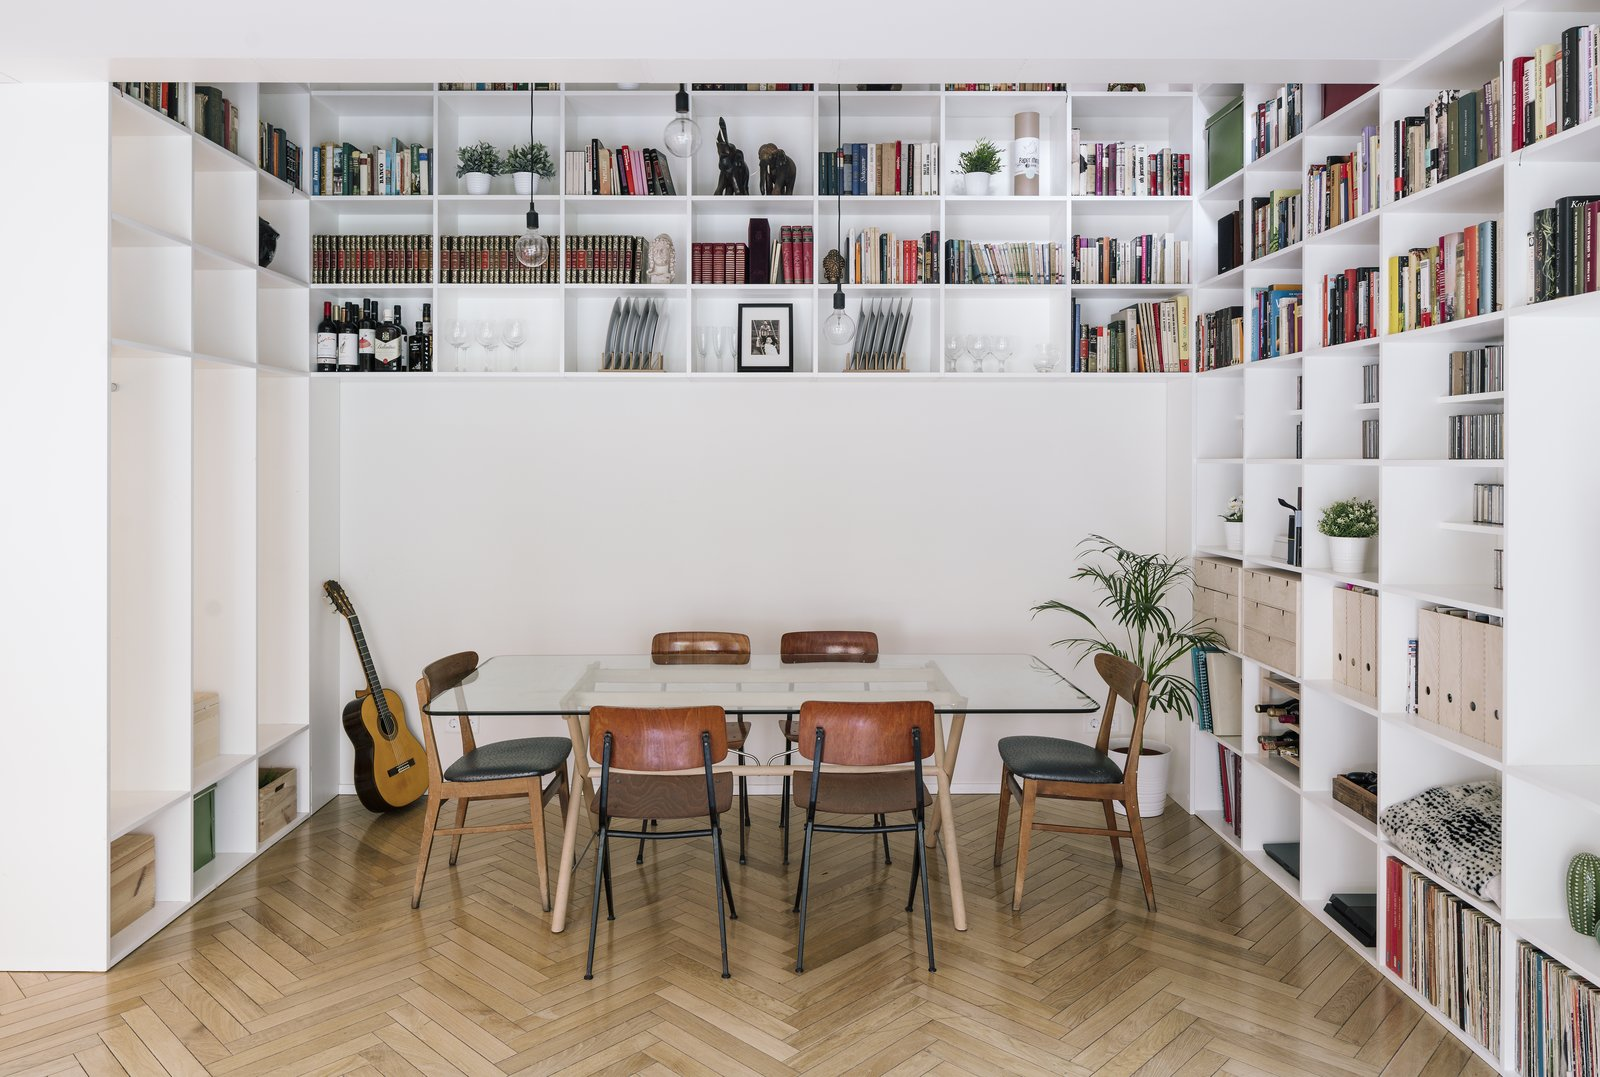 6House by Zooco Estudio double-height dining room with wraparound white bookshelves